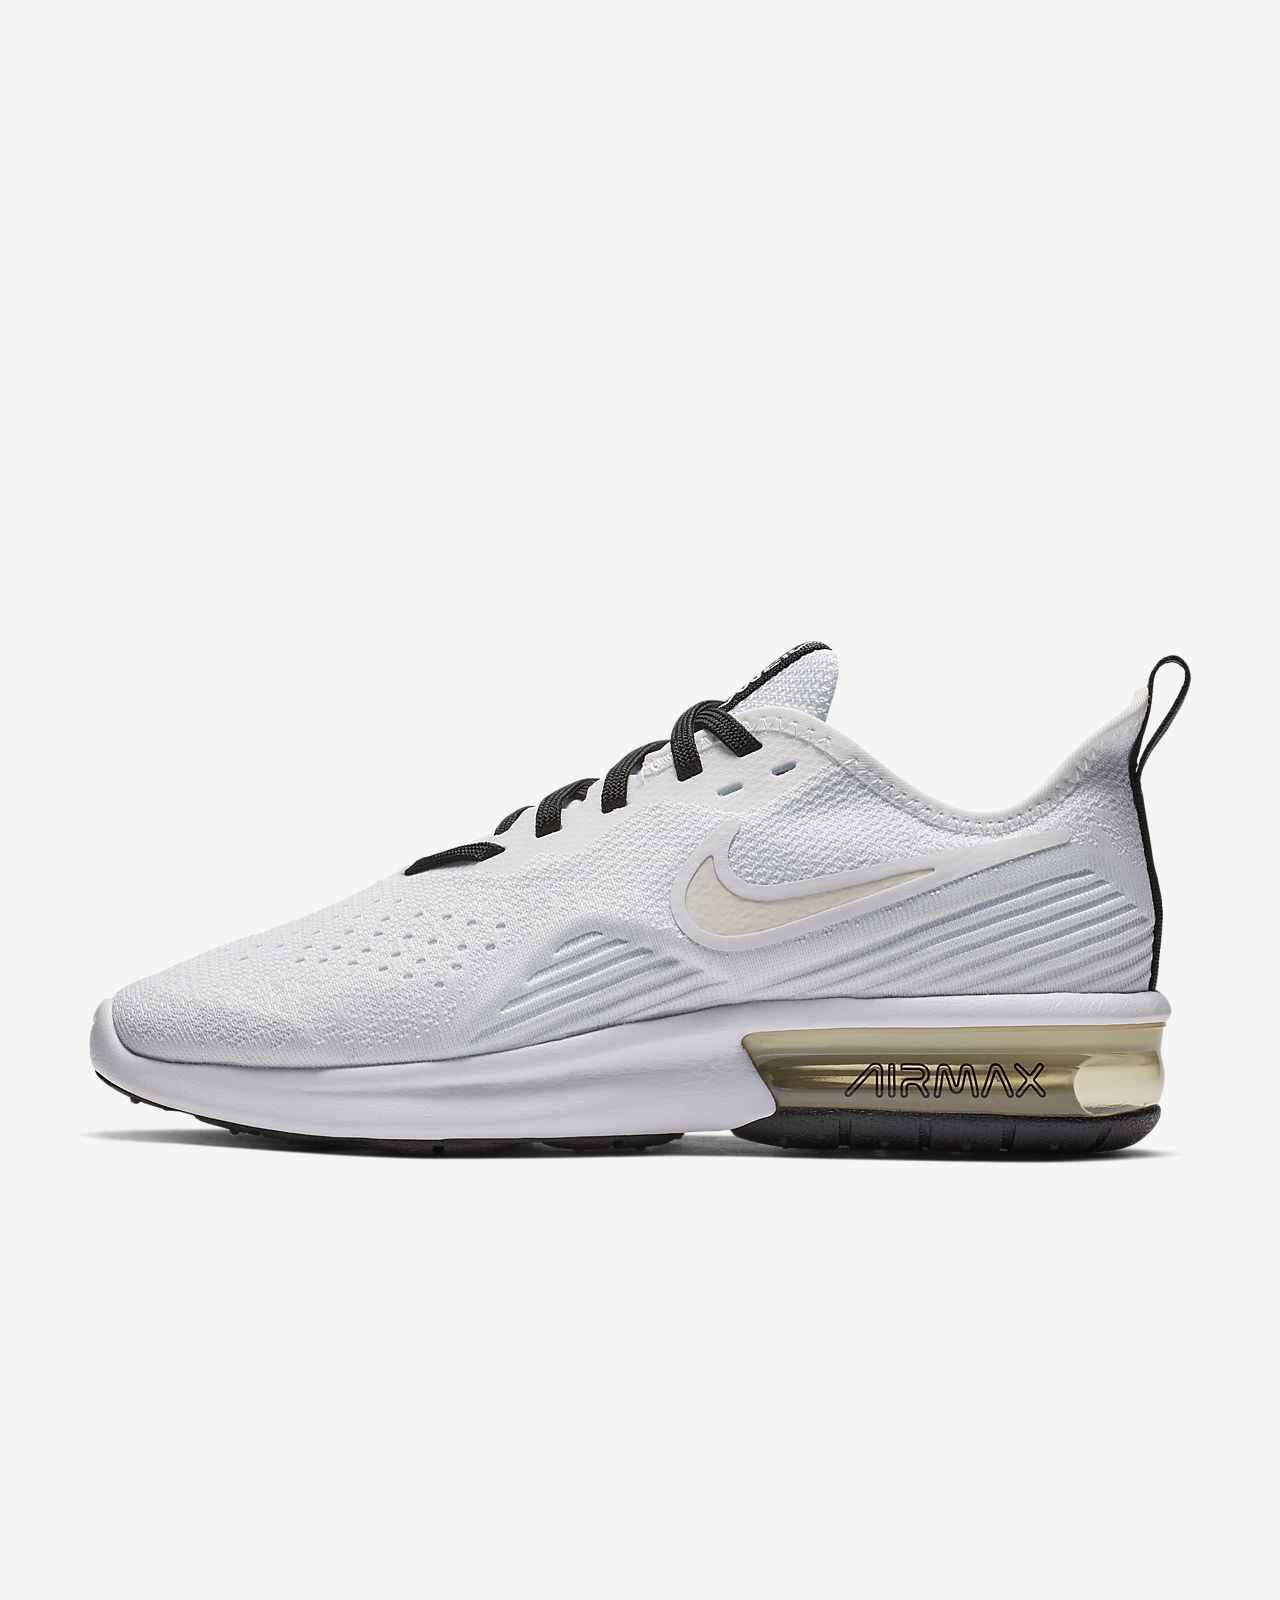 reputable site cb643 ca0fb Women s Shoe. Nike Air Max Sequent 4